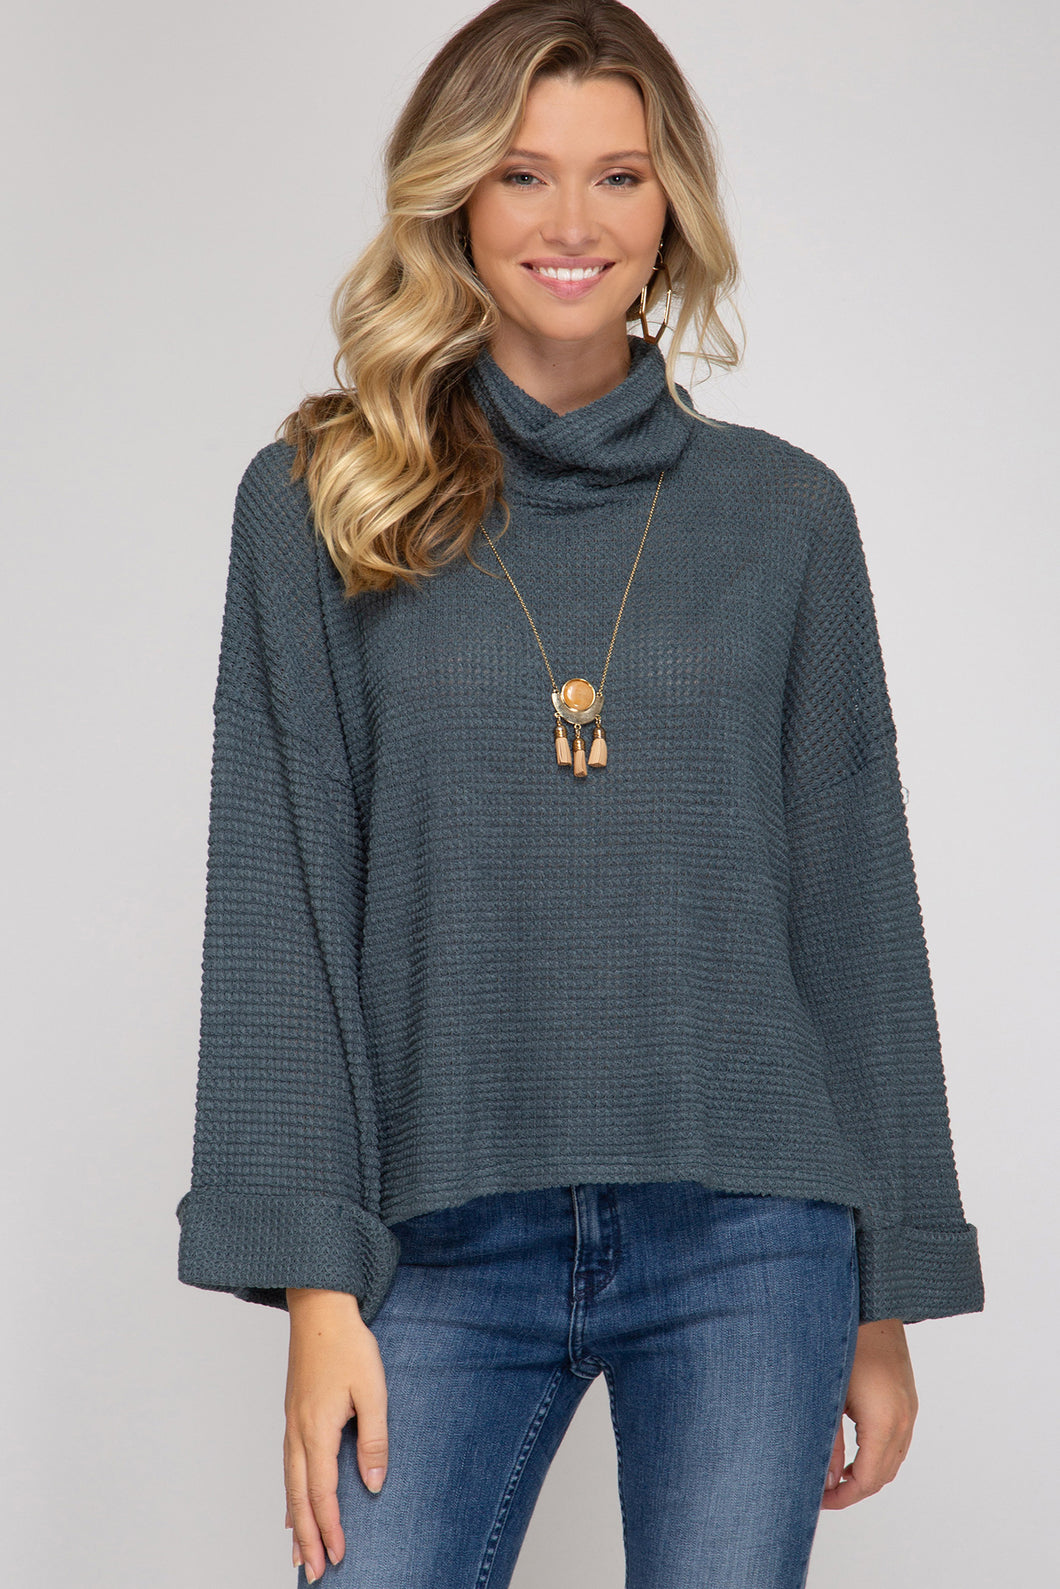 Slate Cuff Sleeve Turtleneck Thermal Top